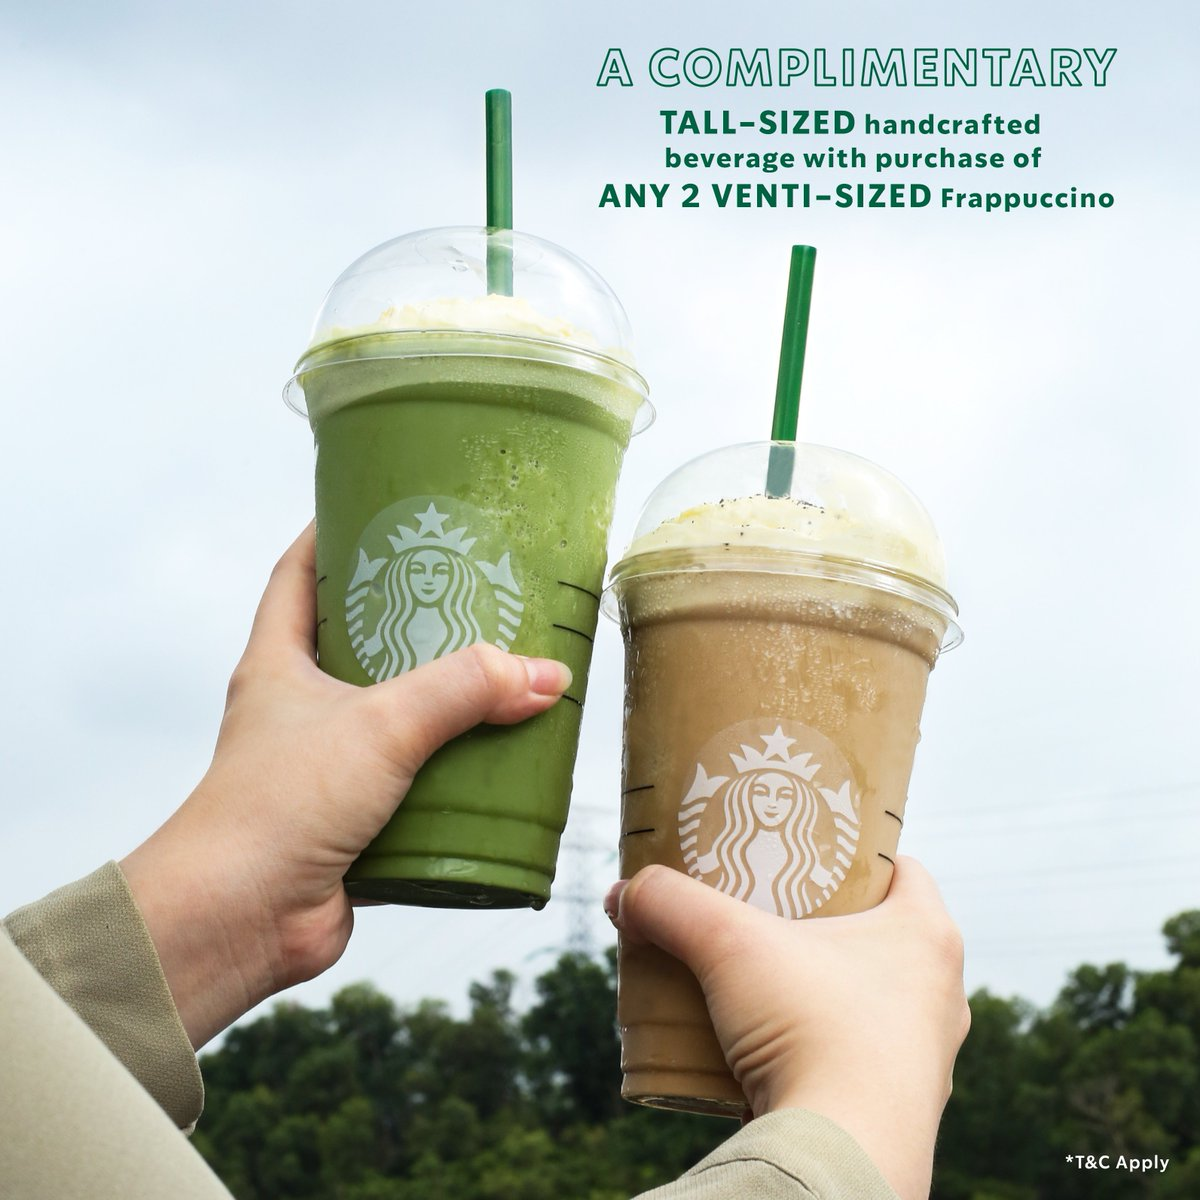 Set your reminders on for TODAY! It is Monday and get your complimentary Tall-sized handcrafted beverage with purchase of ANY 2 Venti-sized Frappuccino. *T&C Apply https://t.co/TM3DRcA1Ht